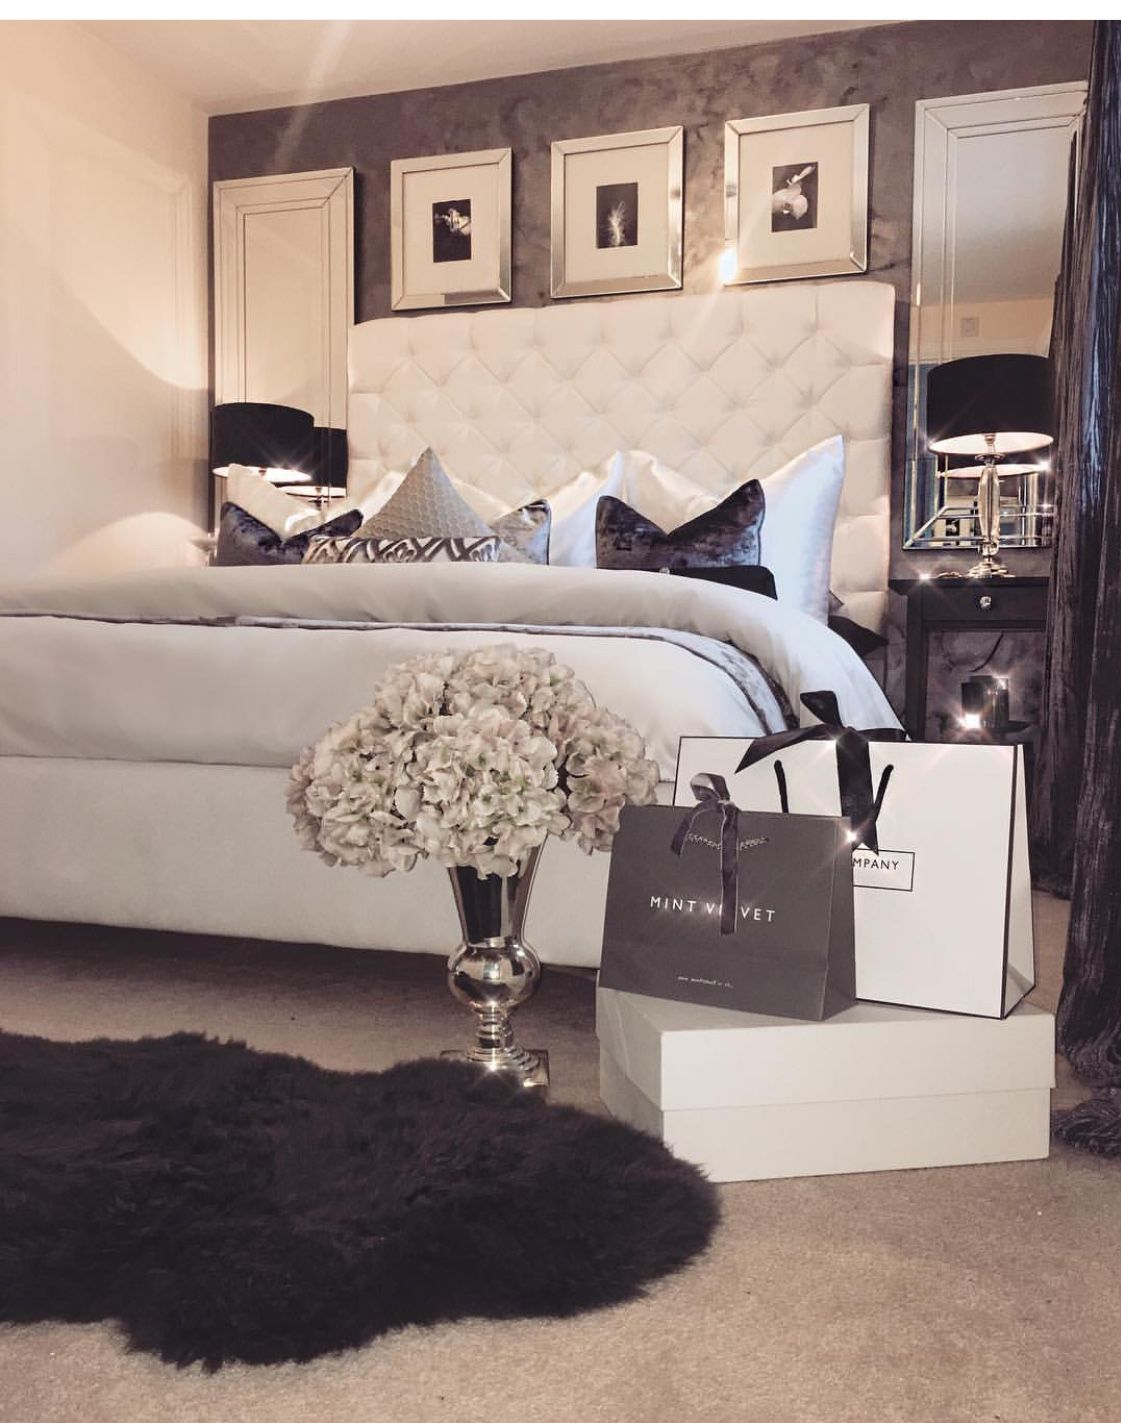 Pin By Yellowrose On Home So Sweet Luxurious Bedrooms Master Bedrooms Decor Luxury Bedroom Design